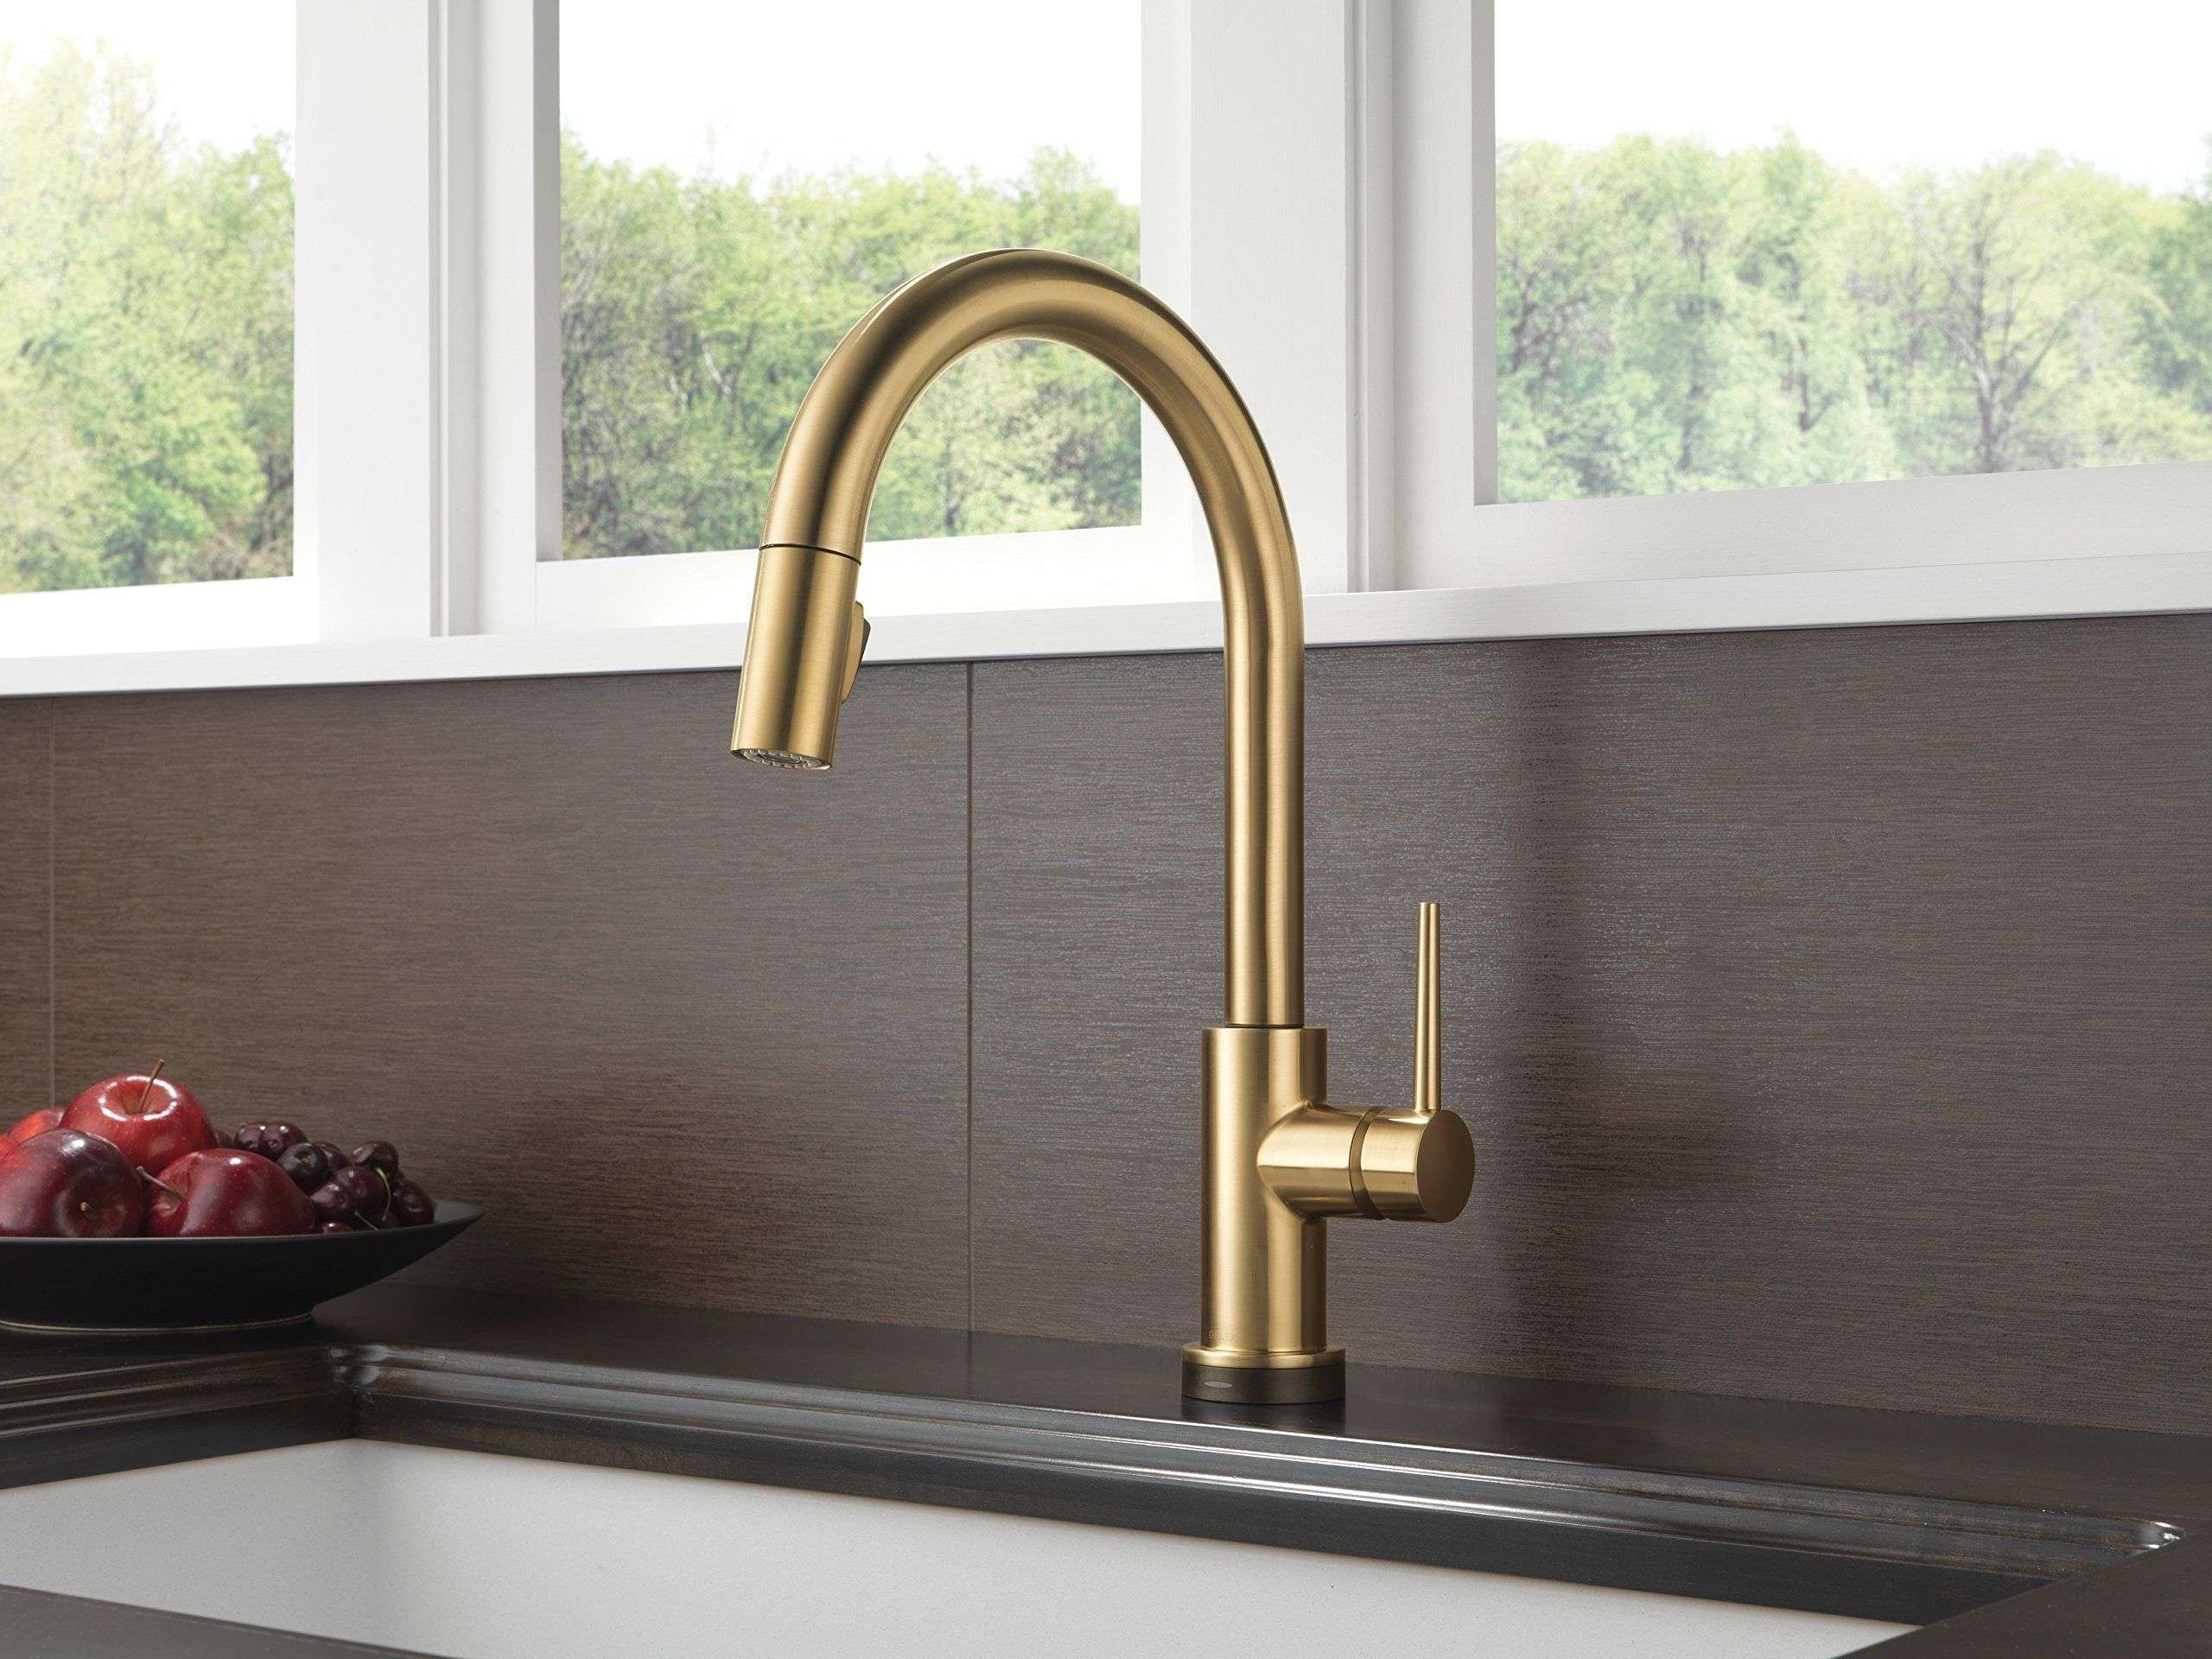 Touch Technology Kitchen Faucet Delta Faucet 9159t Cz Dst Trinsic Single Handle Pull Down Kitchen